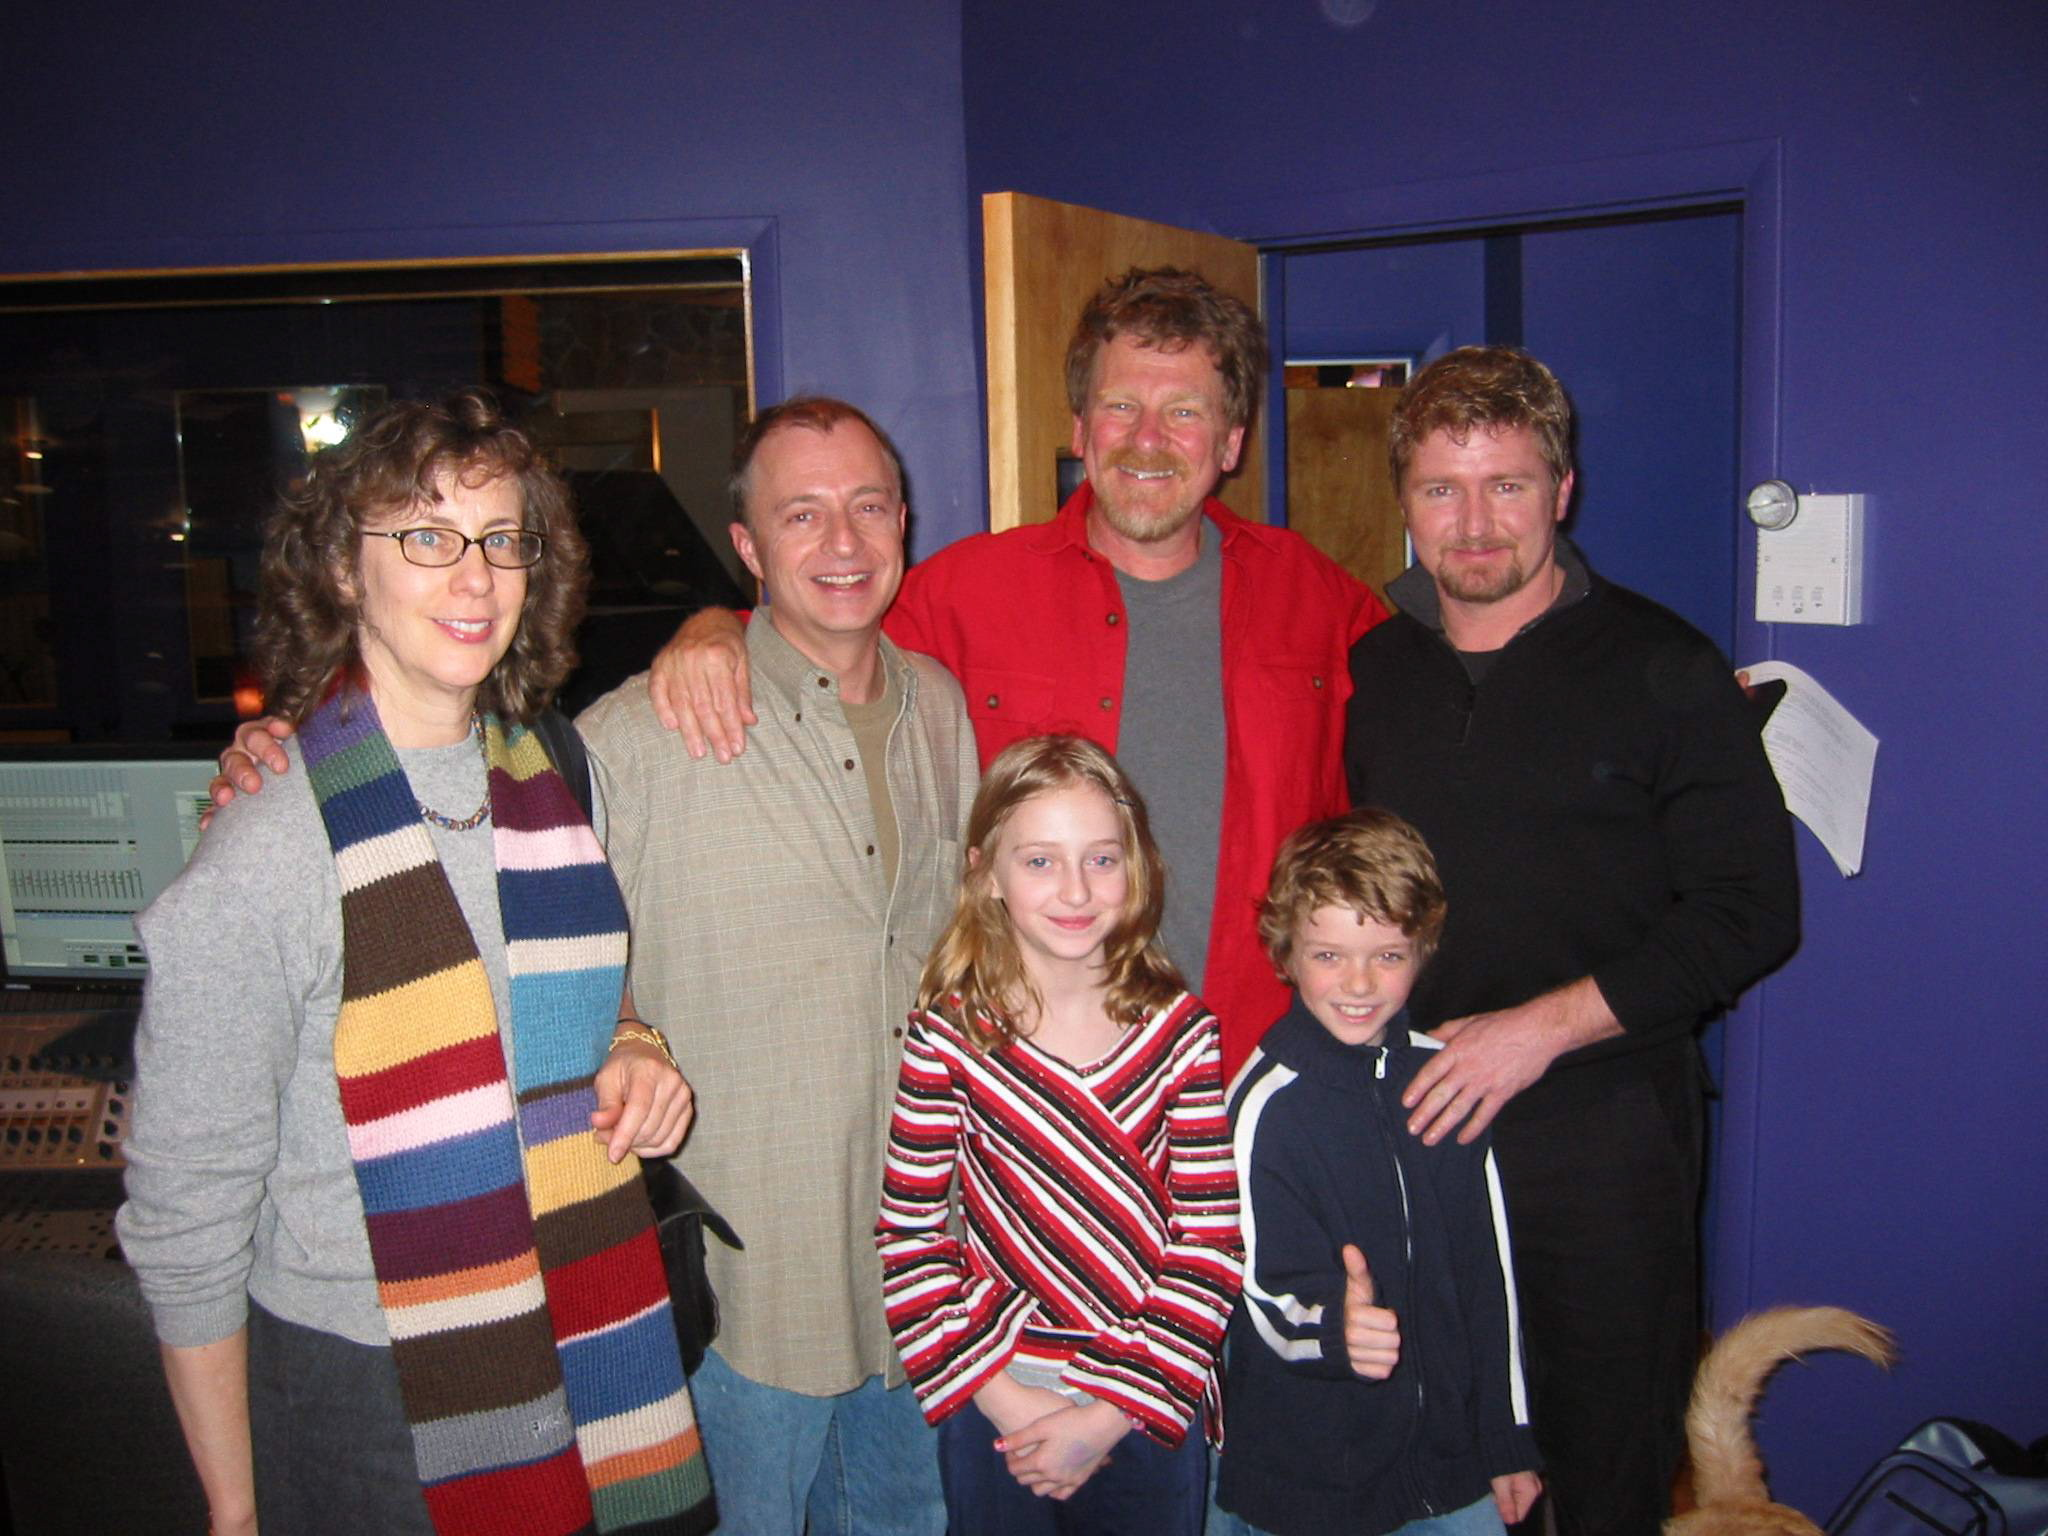 With Irene Mecchi, Roger Allers, et al. at The Thief recording sessions.jpeg